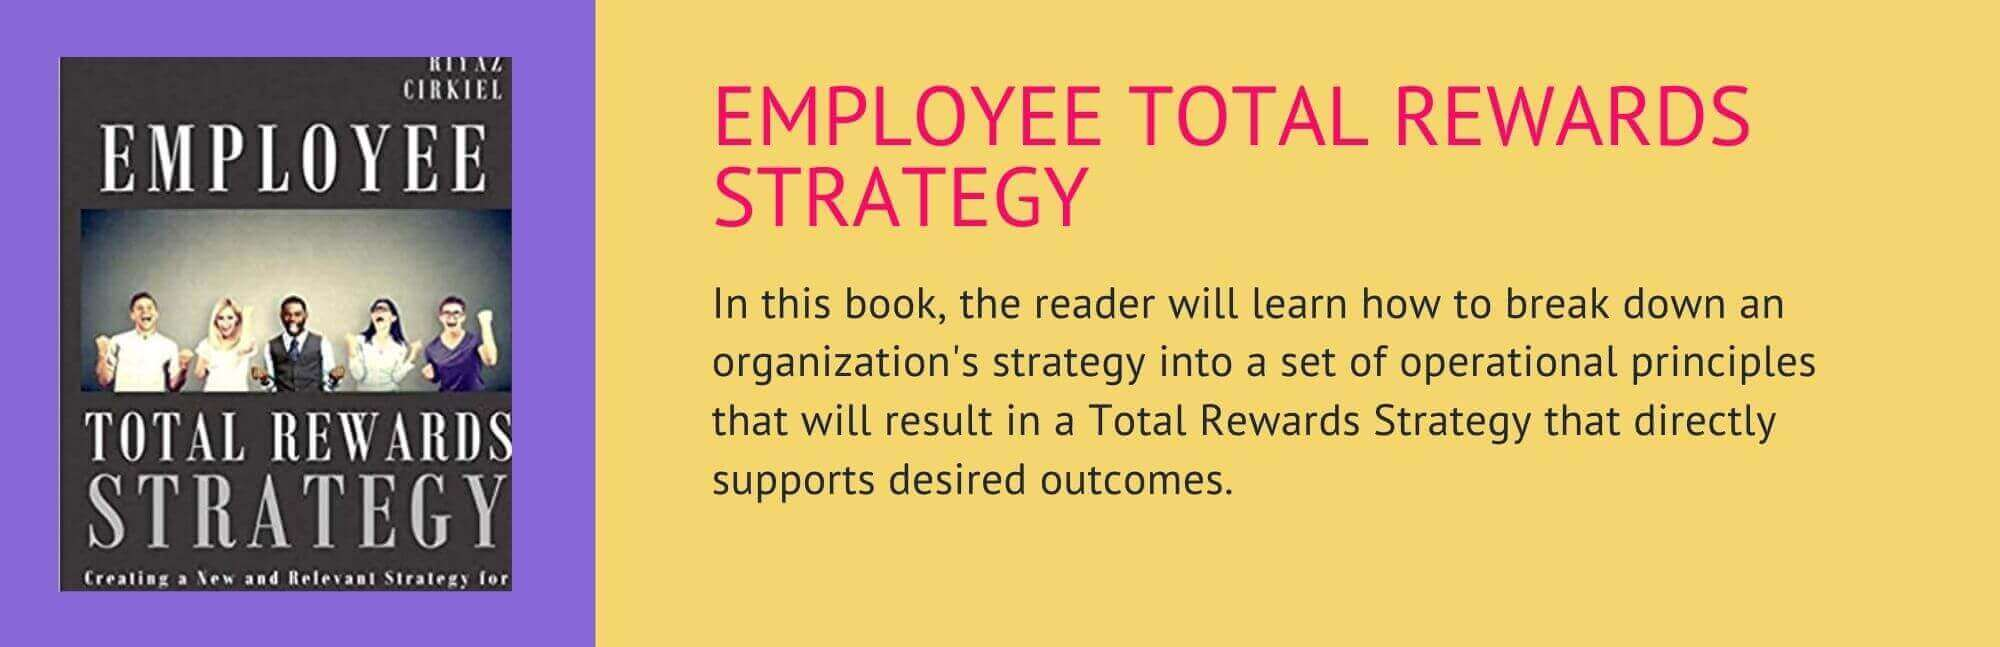 Employee-total-rewards-strategy-book-by-michael--ali-and-robert